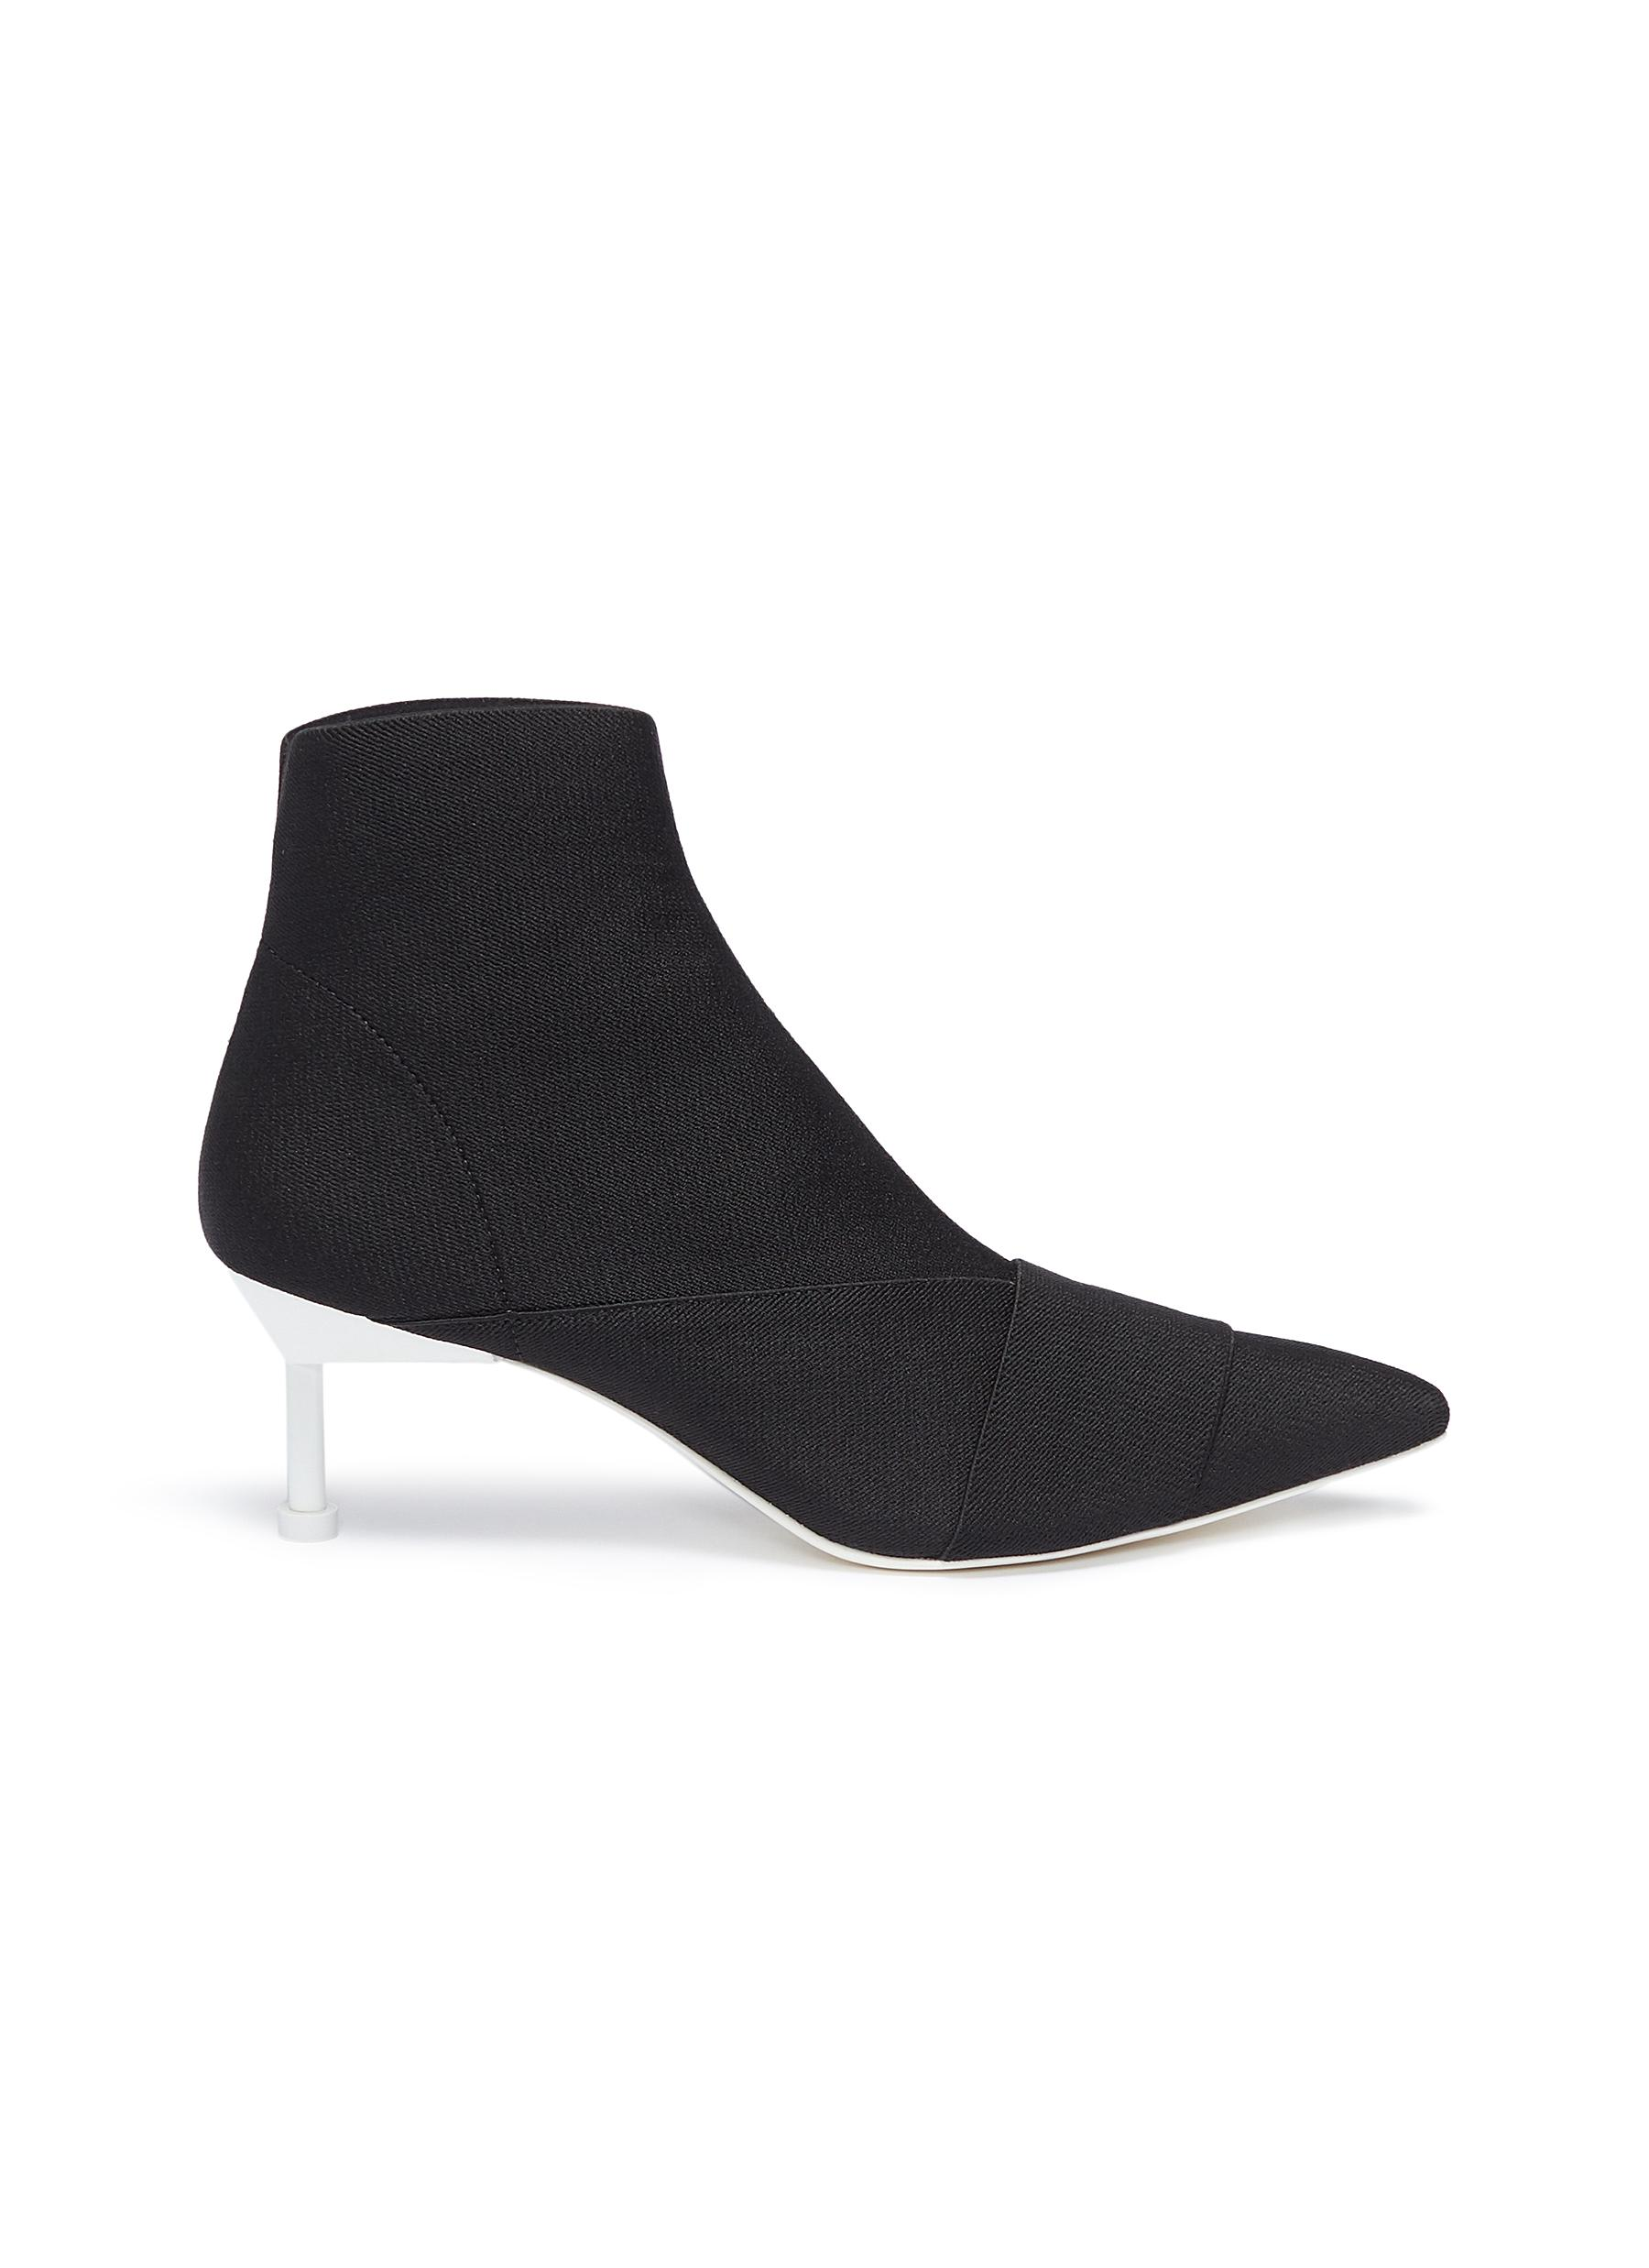 Kera Mid stretch ankle boots by Mercedes Castillo